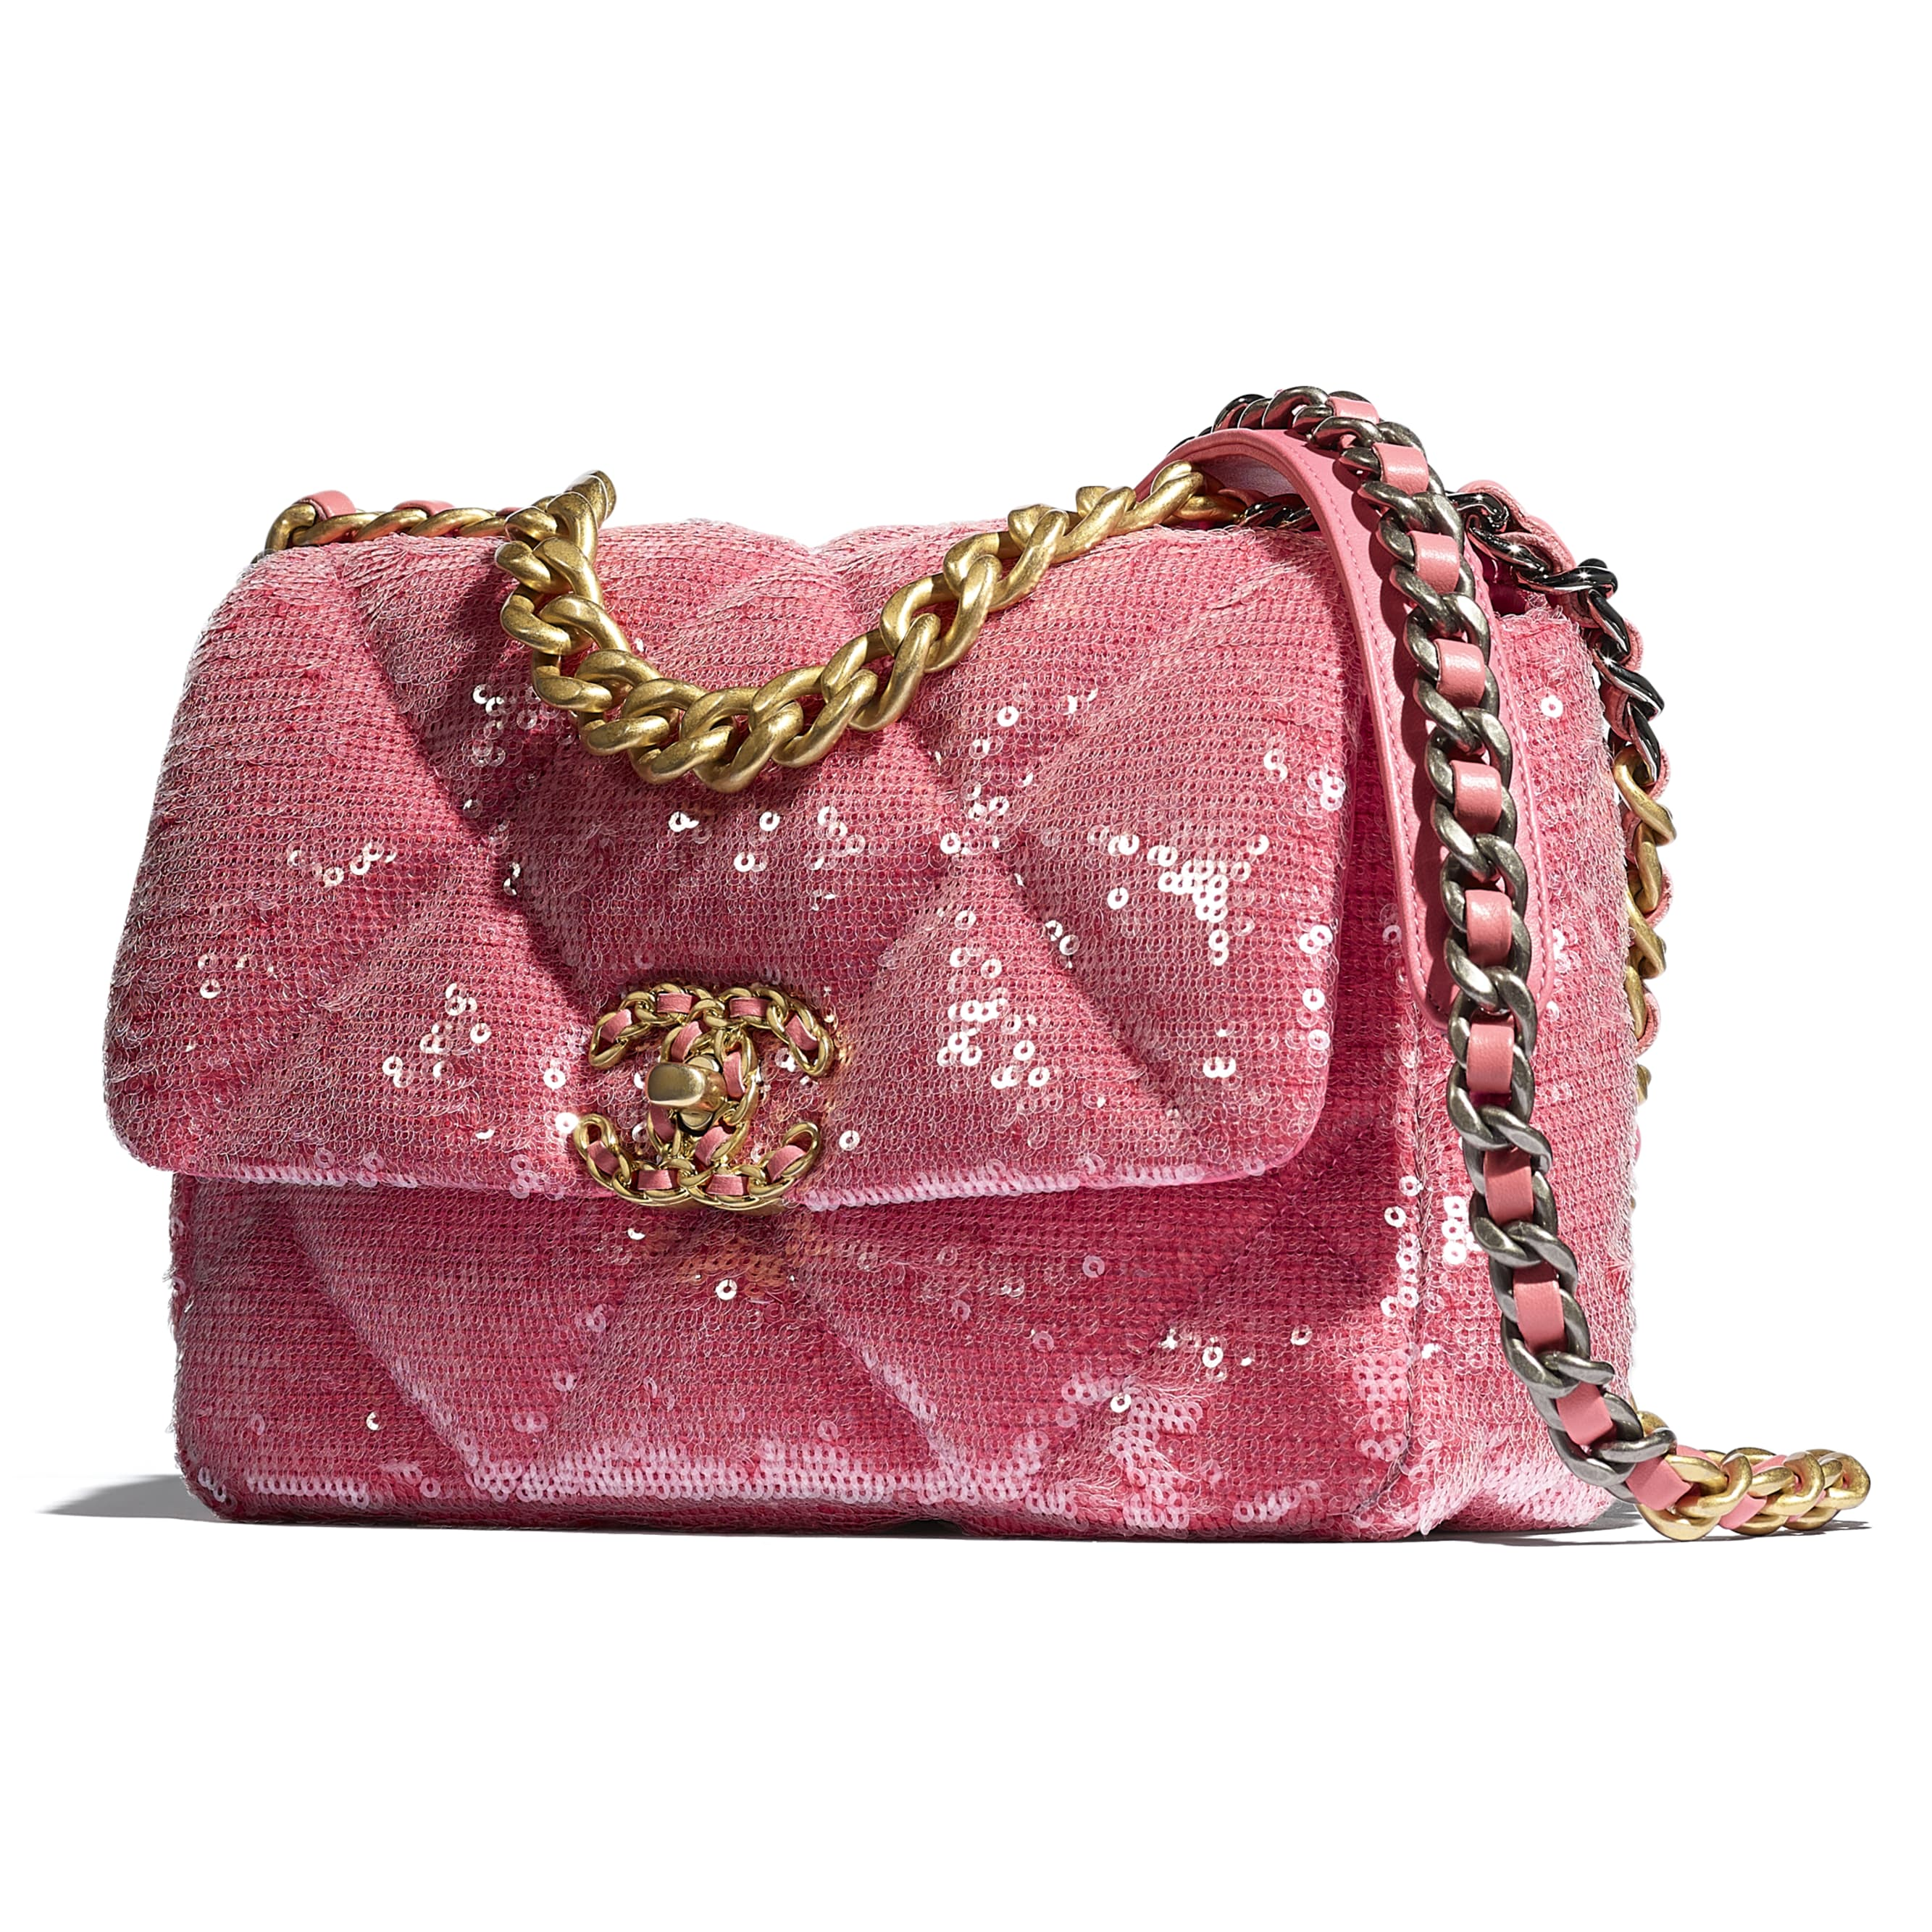 CHANEL 19 Flap Bag - Coral - Sequins, calfksin, silver-tone & gold-tone metal - CHANEL - Extra view - see standard sized version